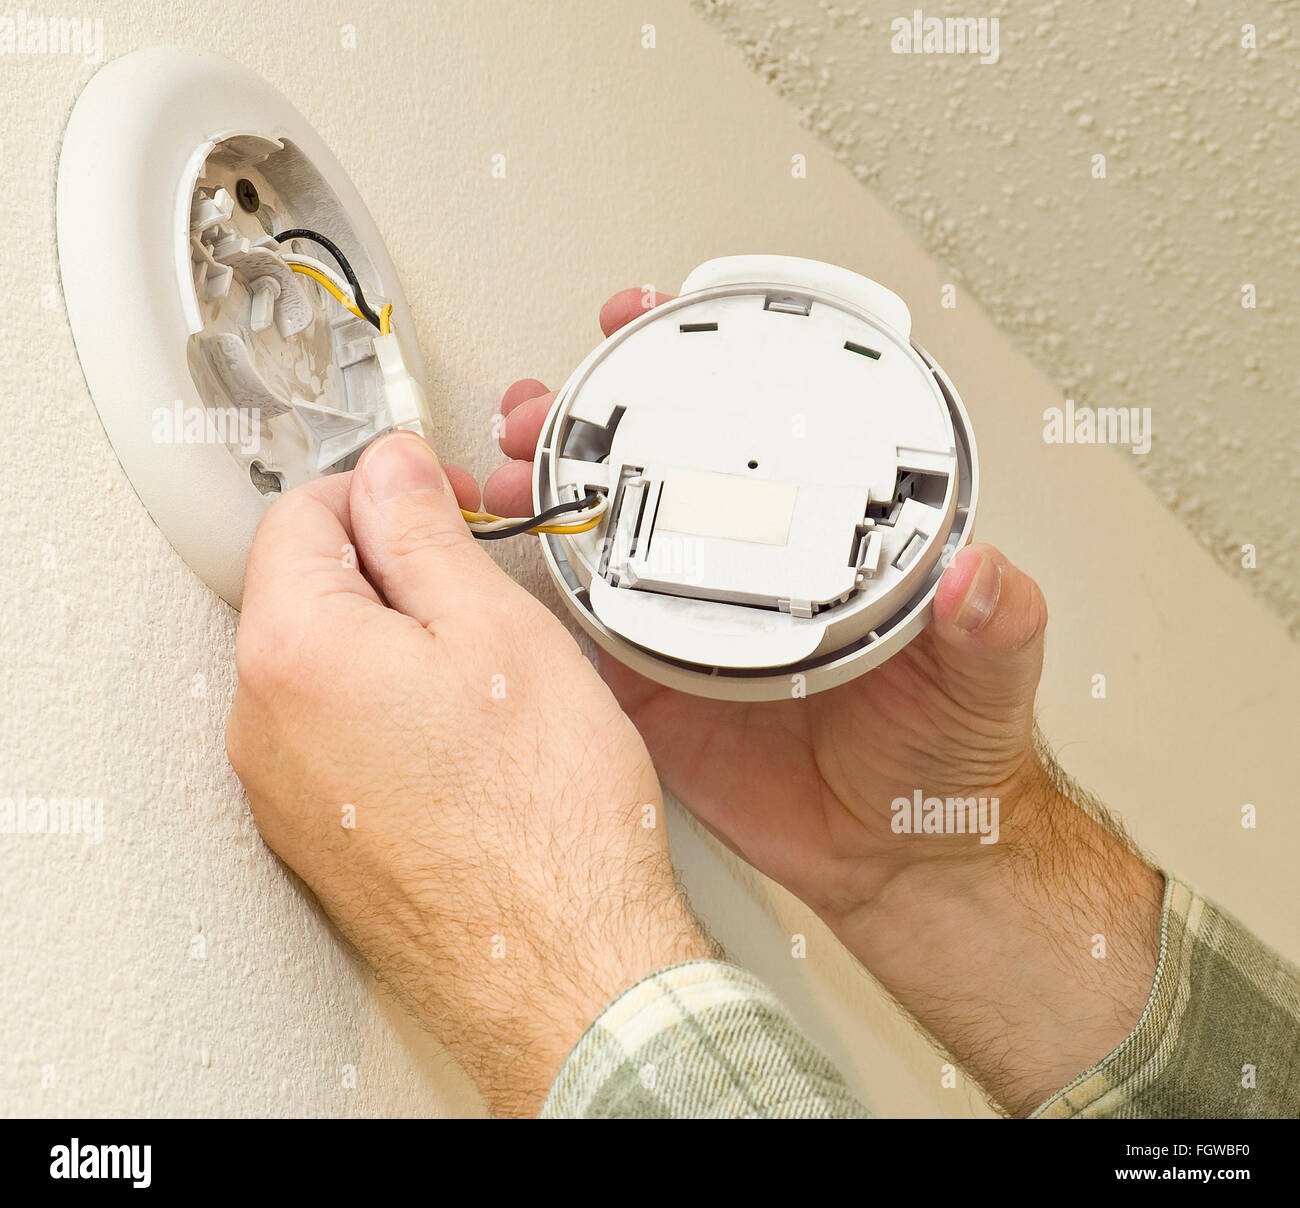 Removing Smoke Detector to Change the Battery - Stock Image